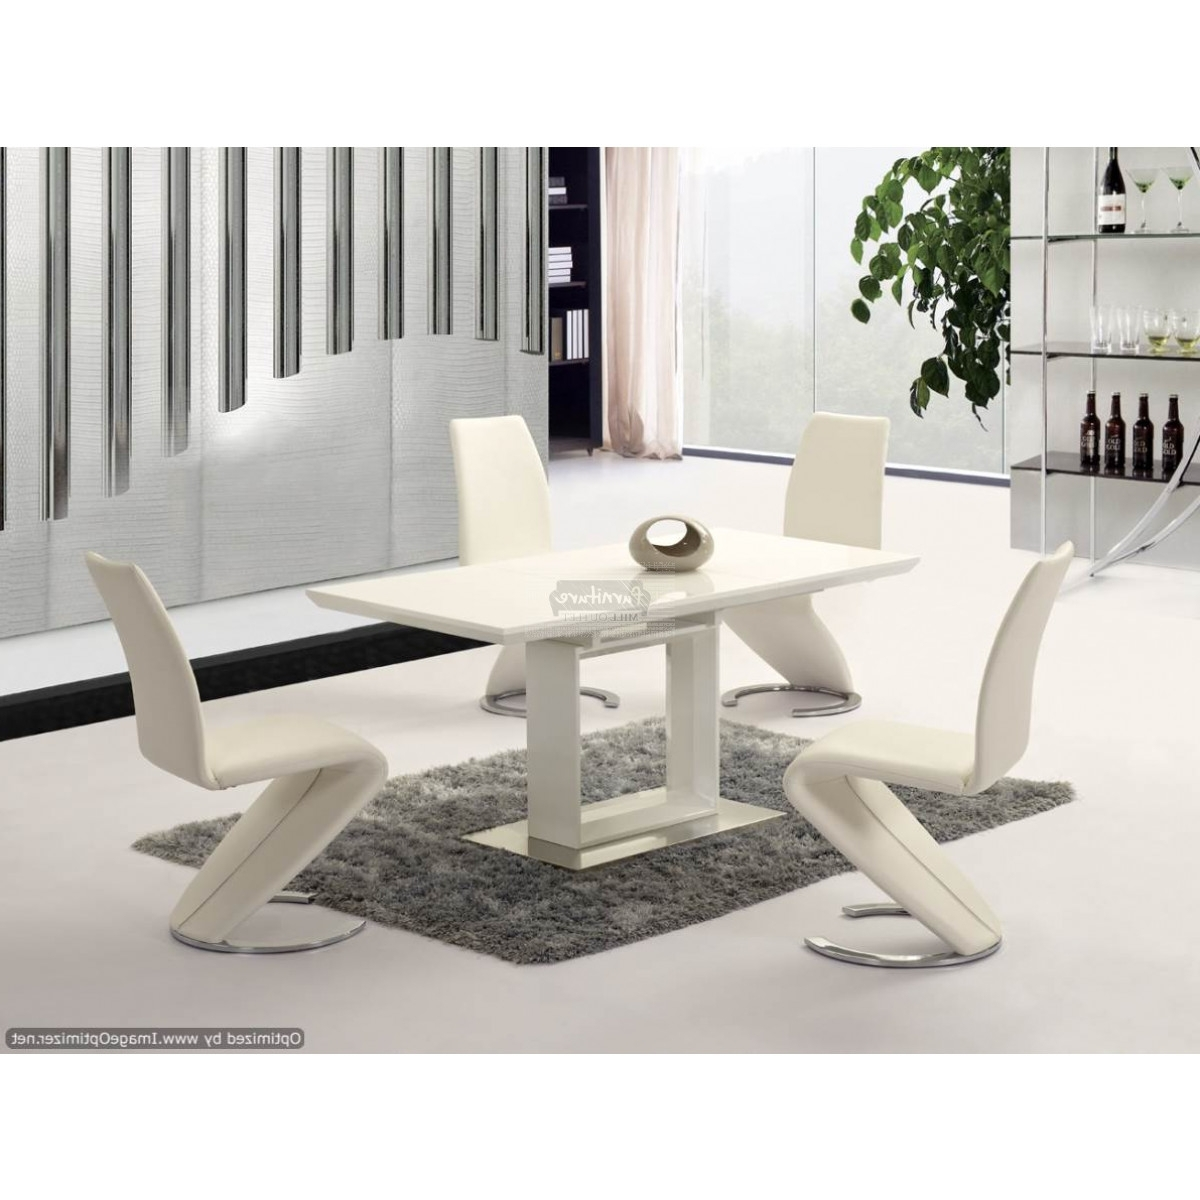 Best And Newest Space White High Gloss Extending Dining Table – 120Cm To 160Cm Throughout High Gloss Dining Tables (View 22 of 25)